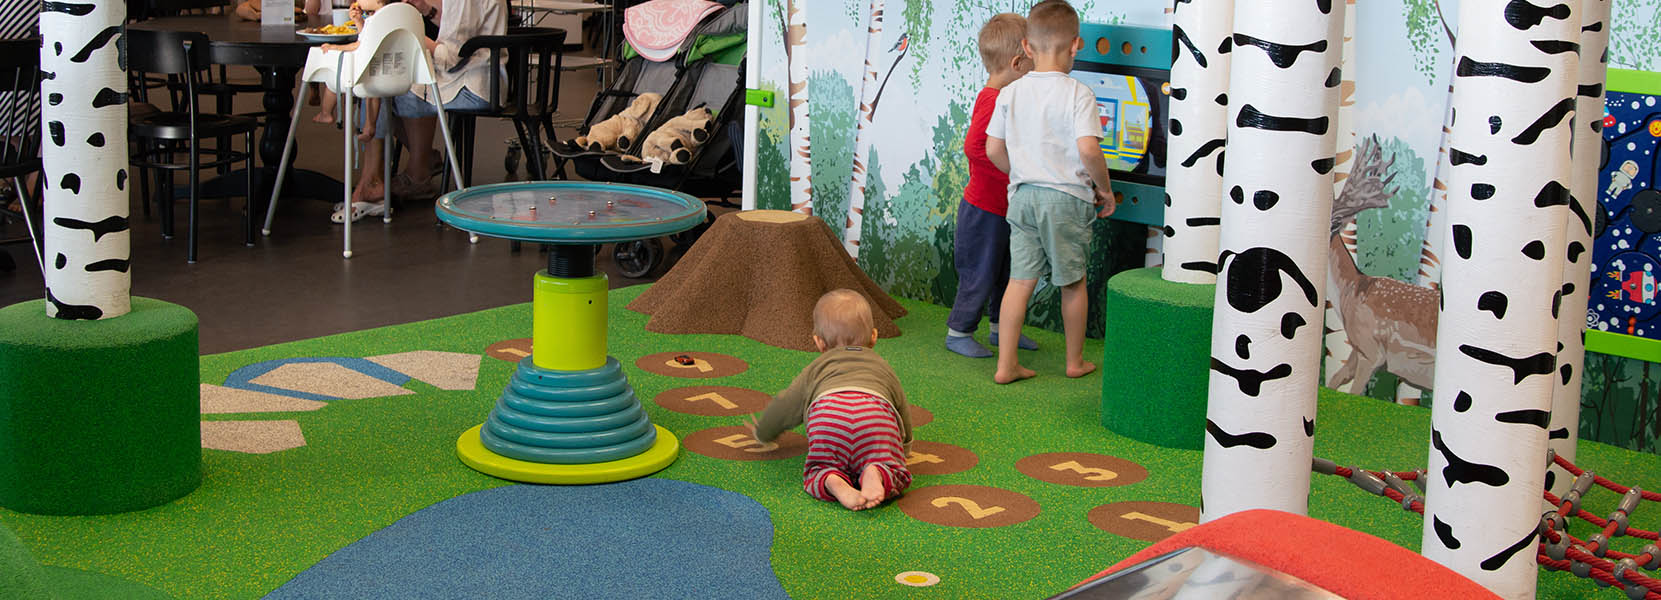 On this image you can see kids' playing in a play corner with EPDM play floors and wall designs